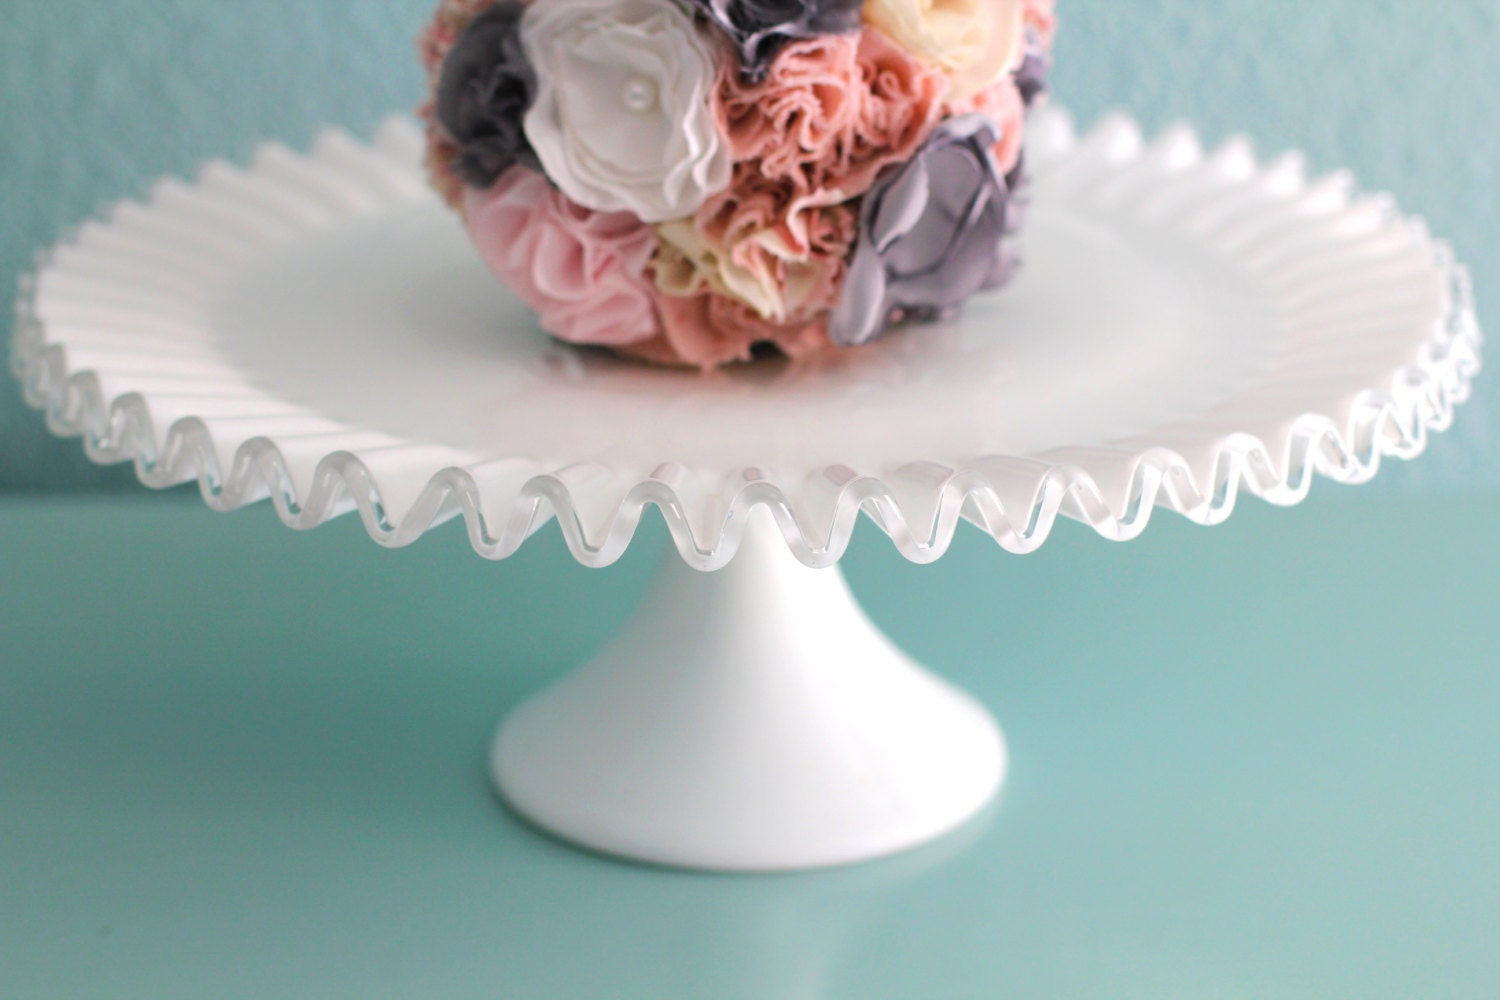 Decorative Cake Stands Milk Glass Cake Stand Fenton Silvercrest Silver Crest Ruffle